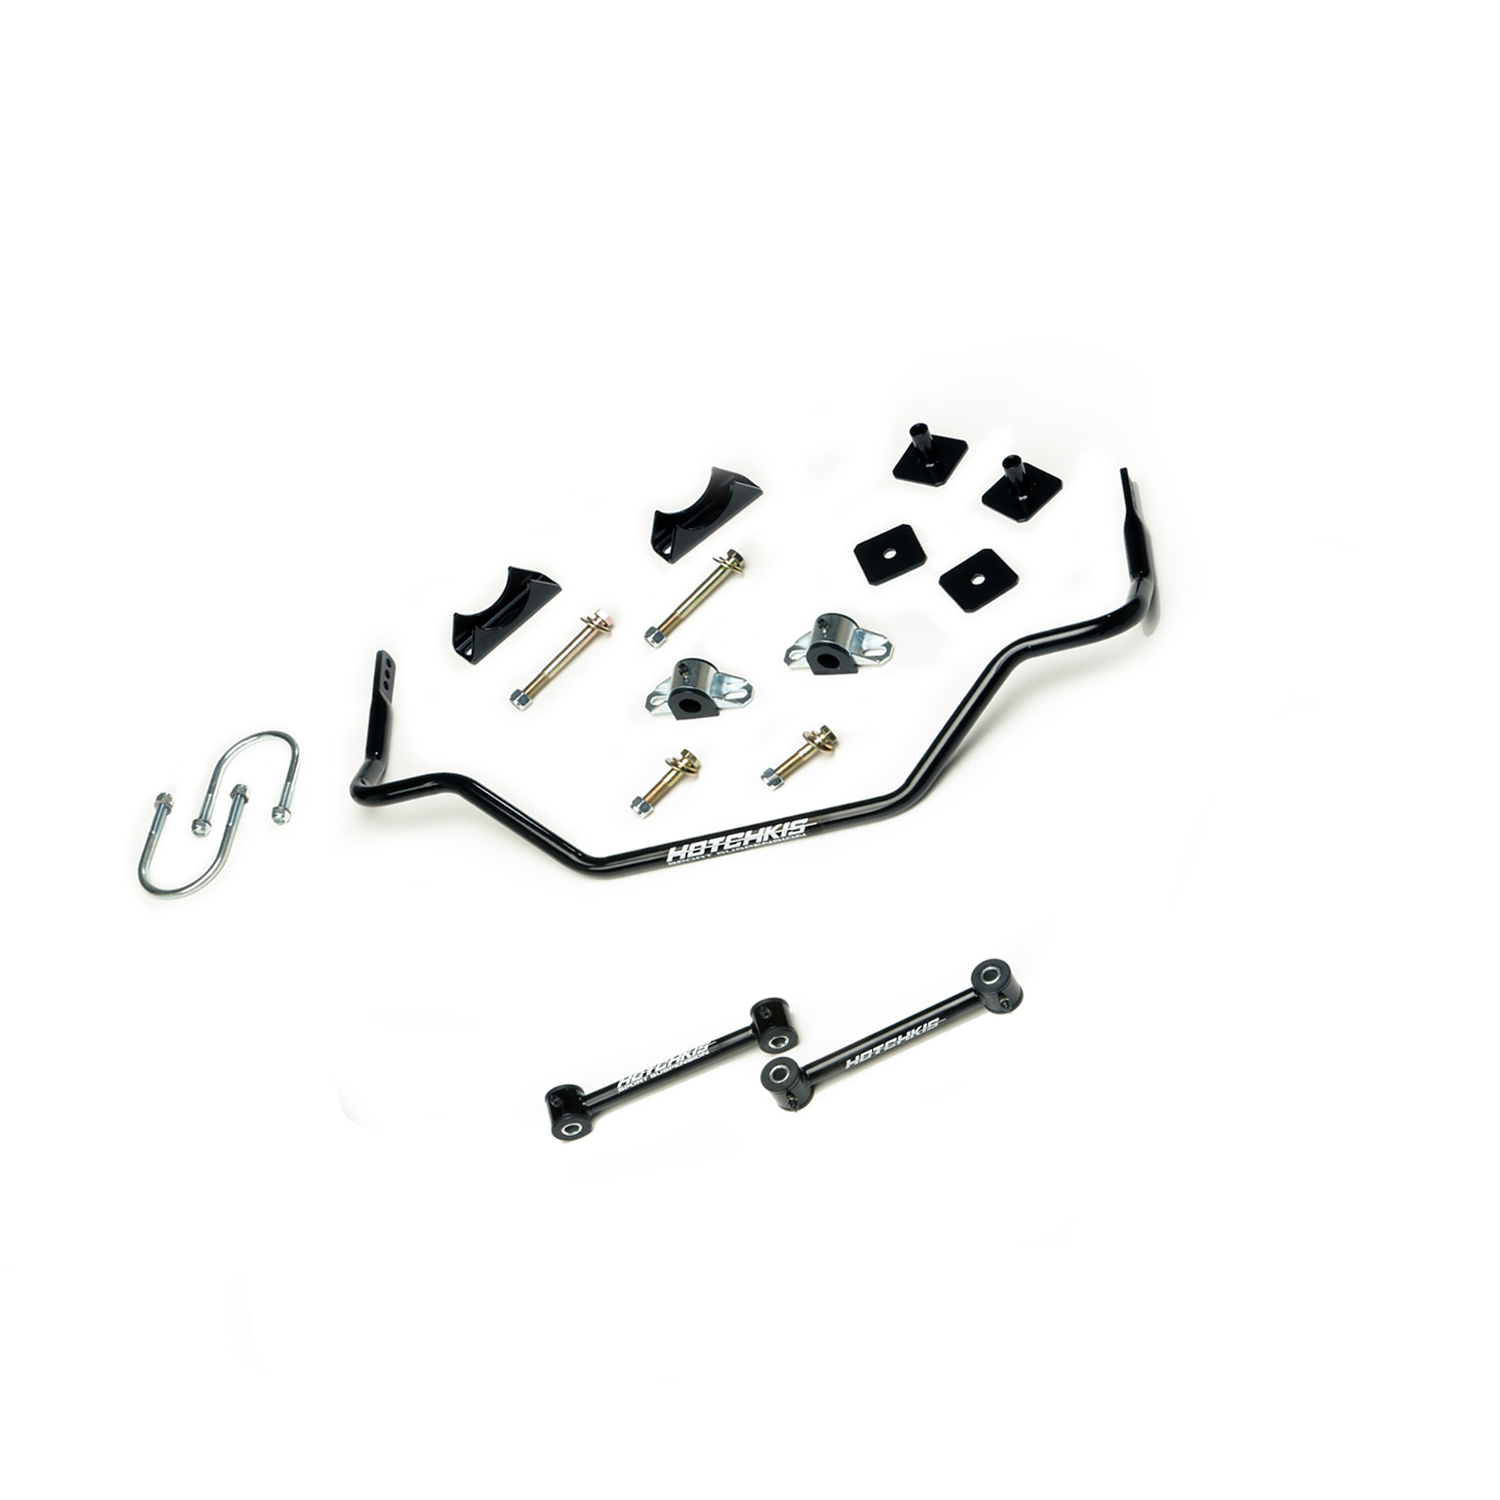 1964  – 1966 Mustang Rear Sway Bar Set from Hotchkis Sport Suspension